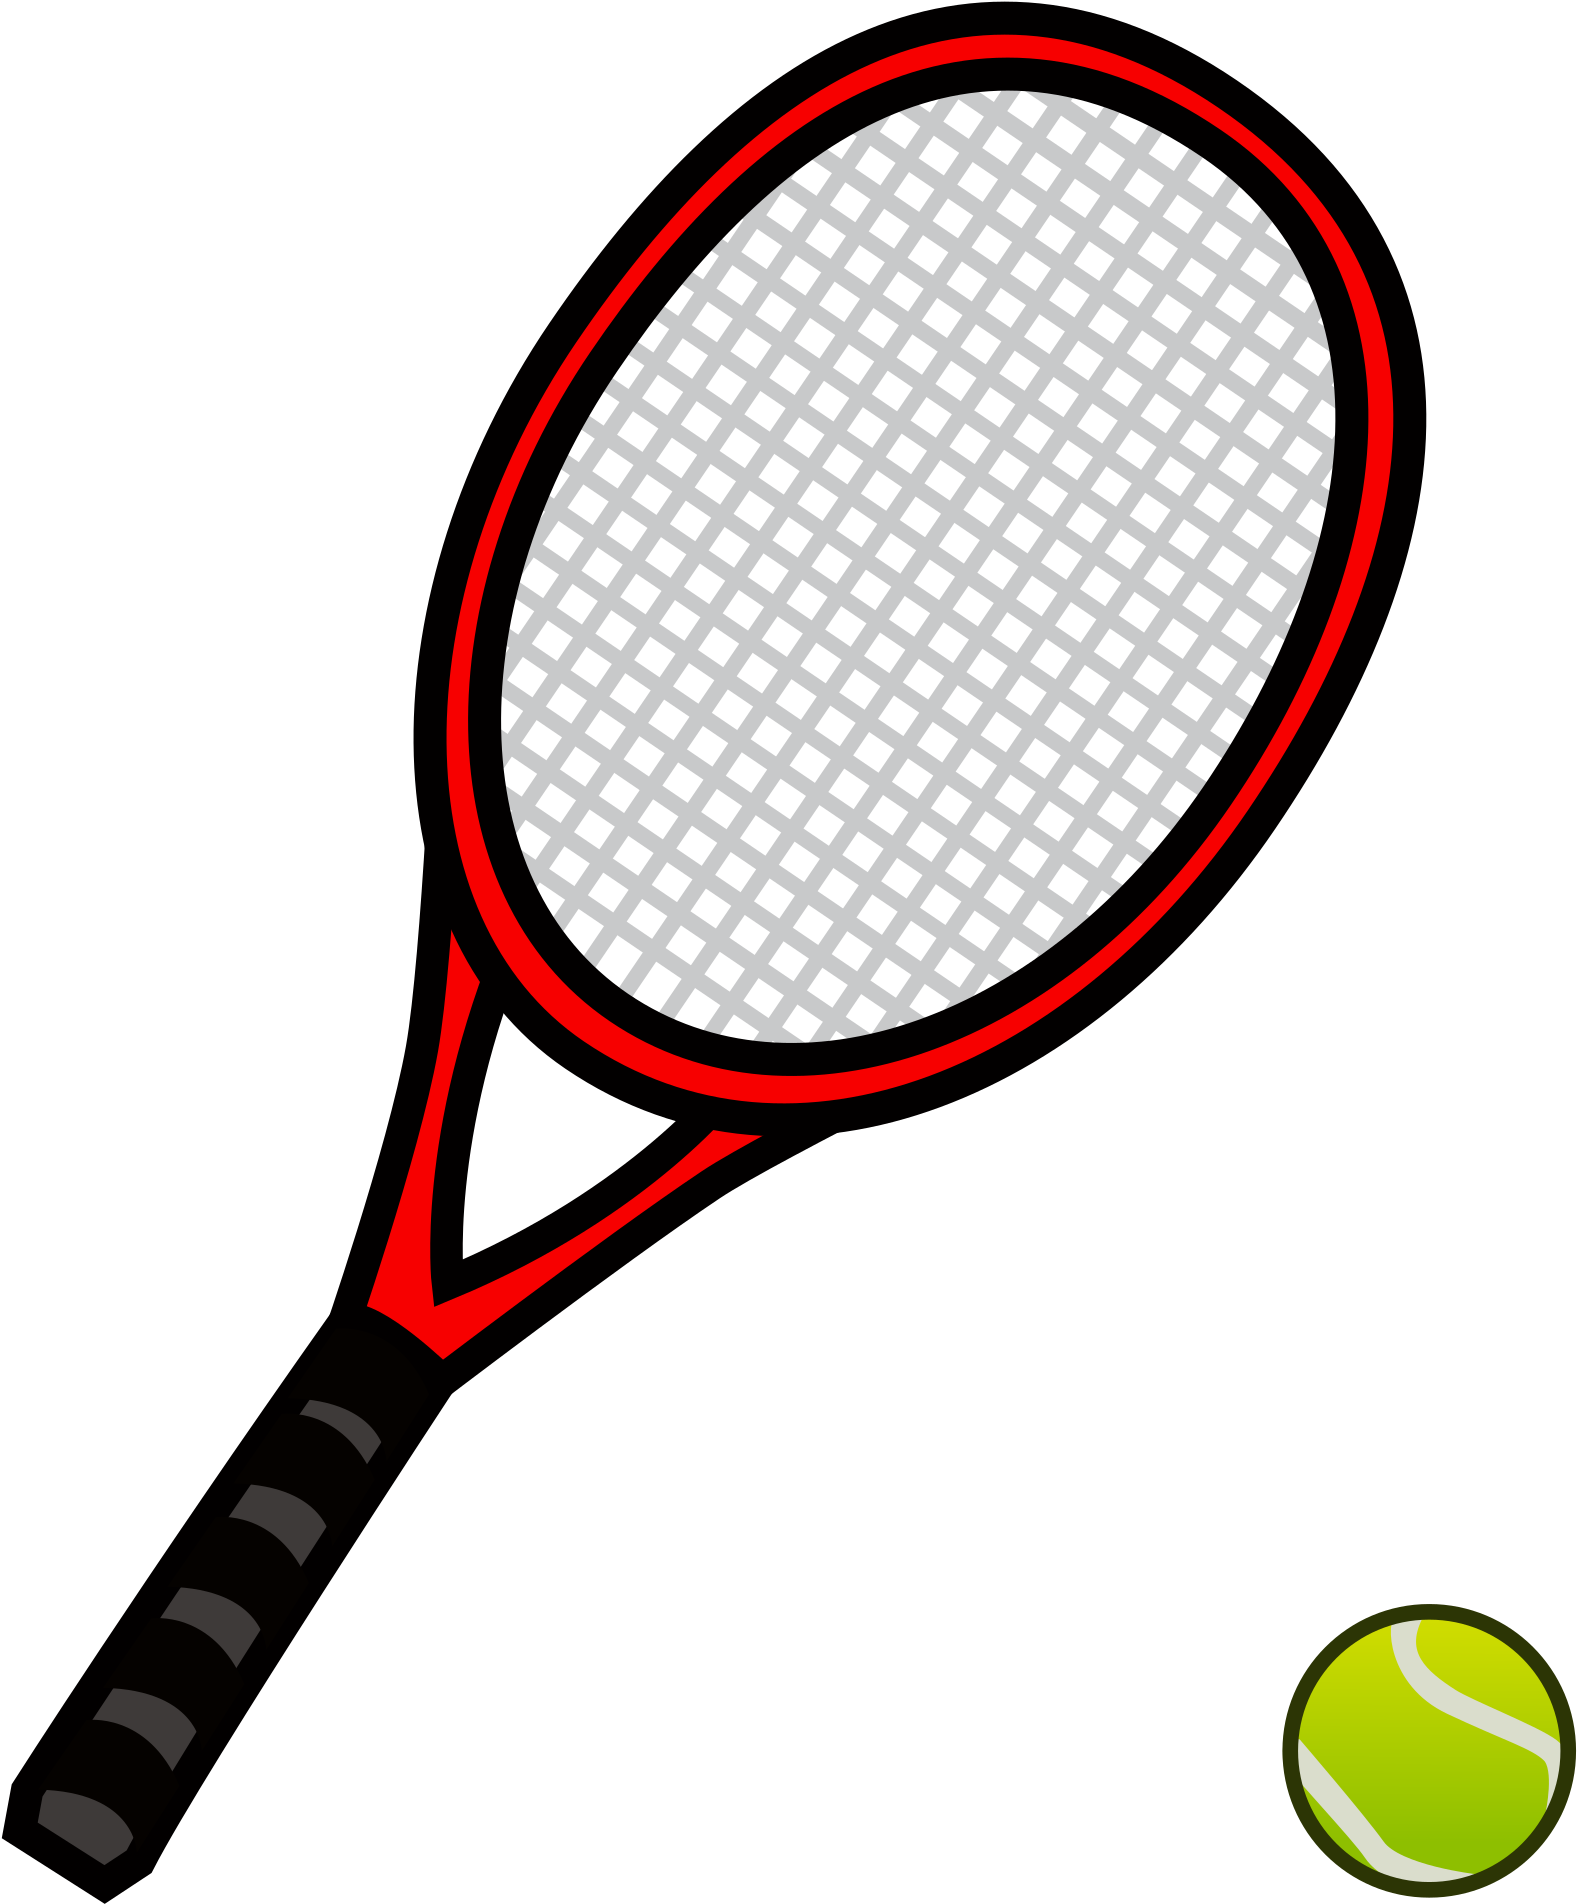 Tennis Racket And Ball 29 Buy Clip Art Transparent Background Border Circle Png Download Full Size Clipart 1486059 Pinclipart